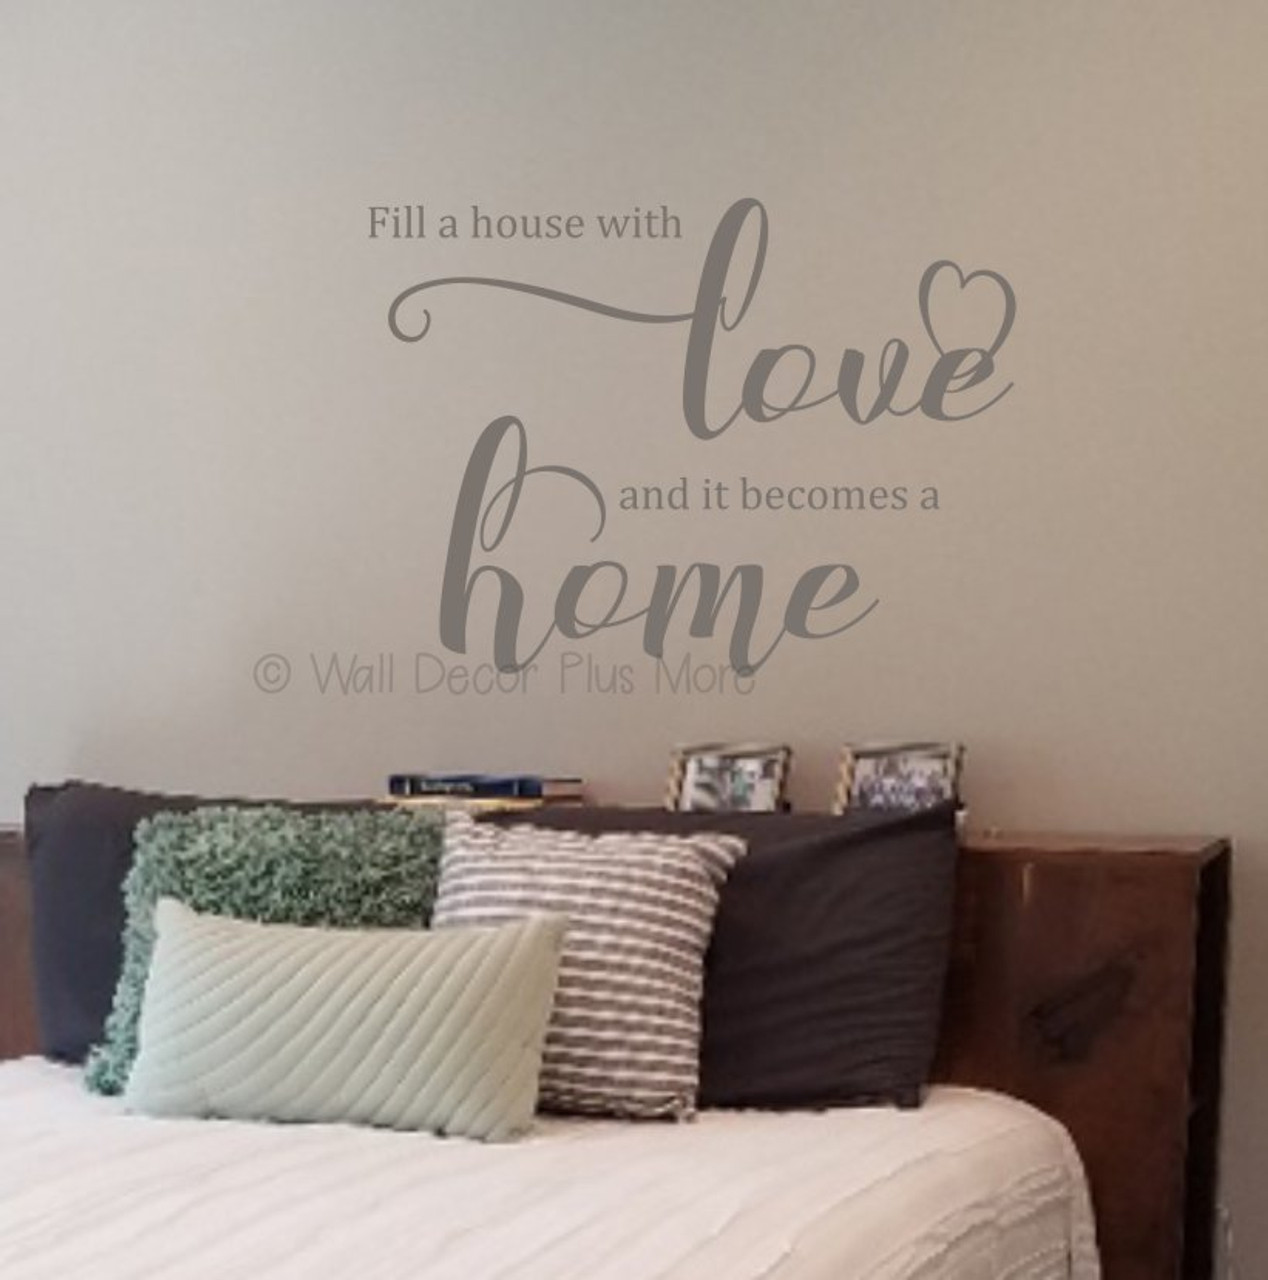 Home where you are loved Wall Stickers Quote Art Decor Bedroom Family